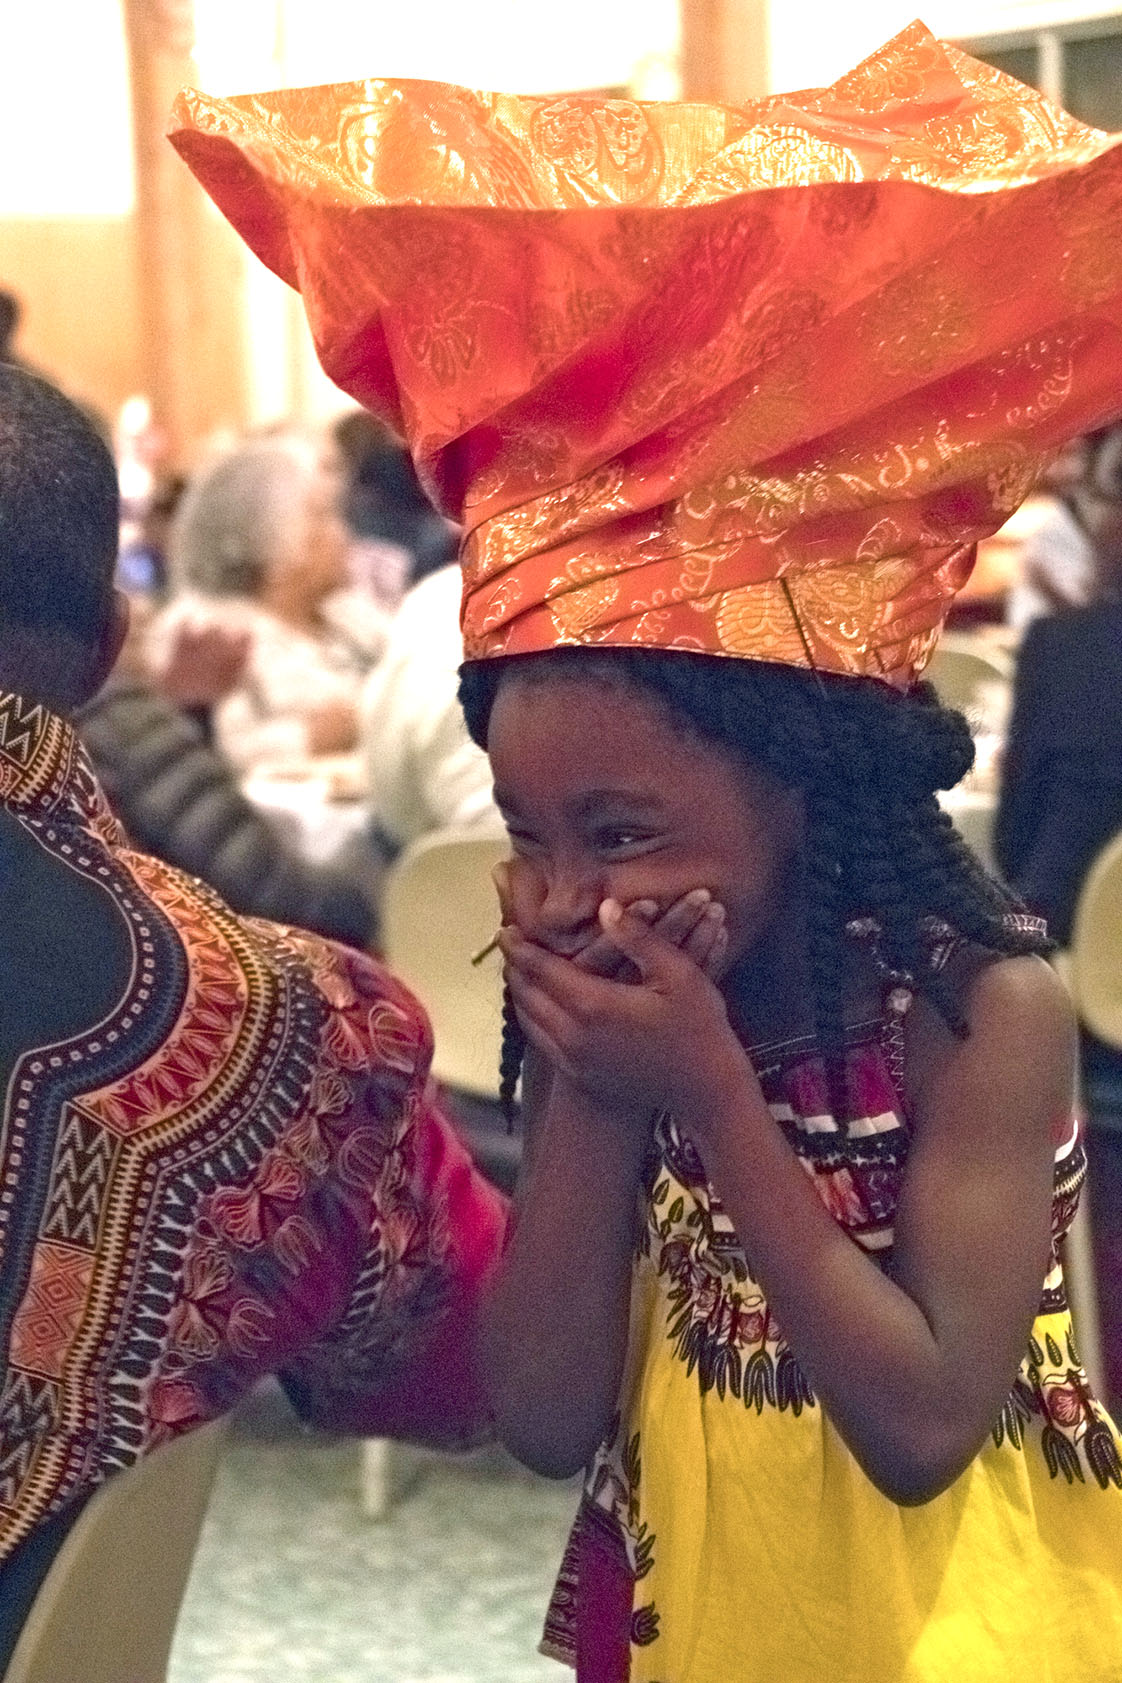 One of the many child models of the evening, Laurina Tamba, giggles as she makes her modeling debut during the Liberian dinner and fashion show at St. Philips on Saturday, Oct. 15. (Staff photo by Brenna Elmore)